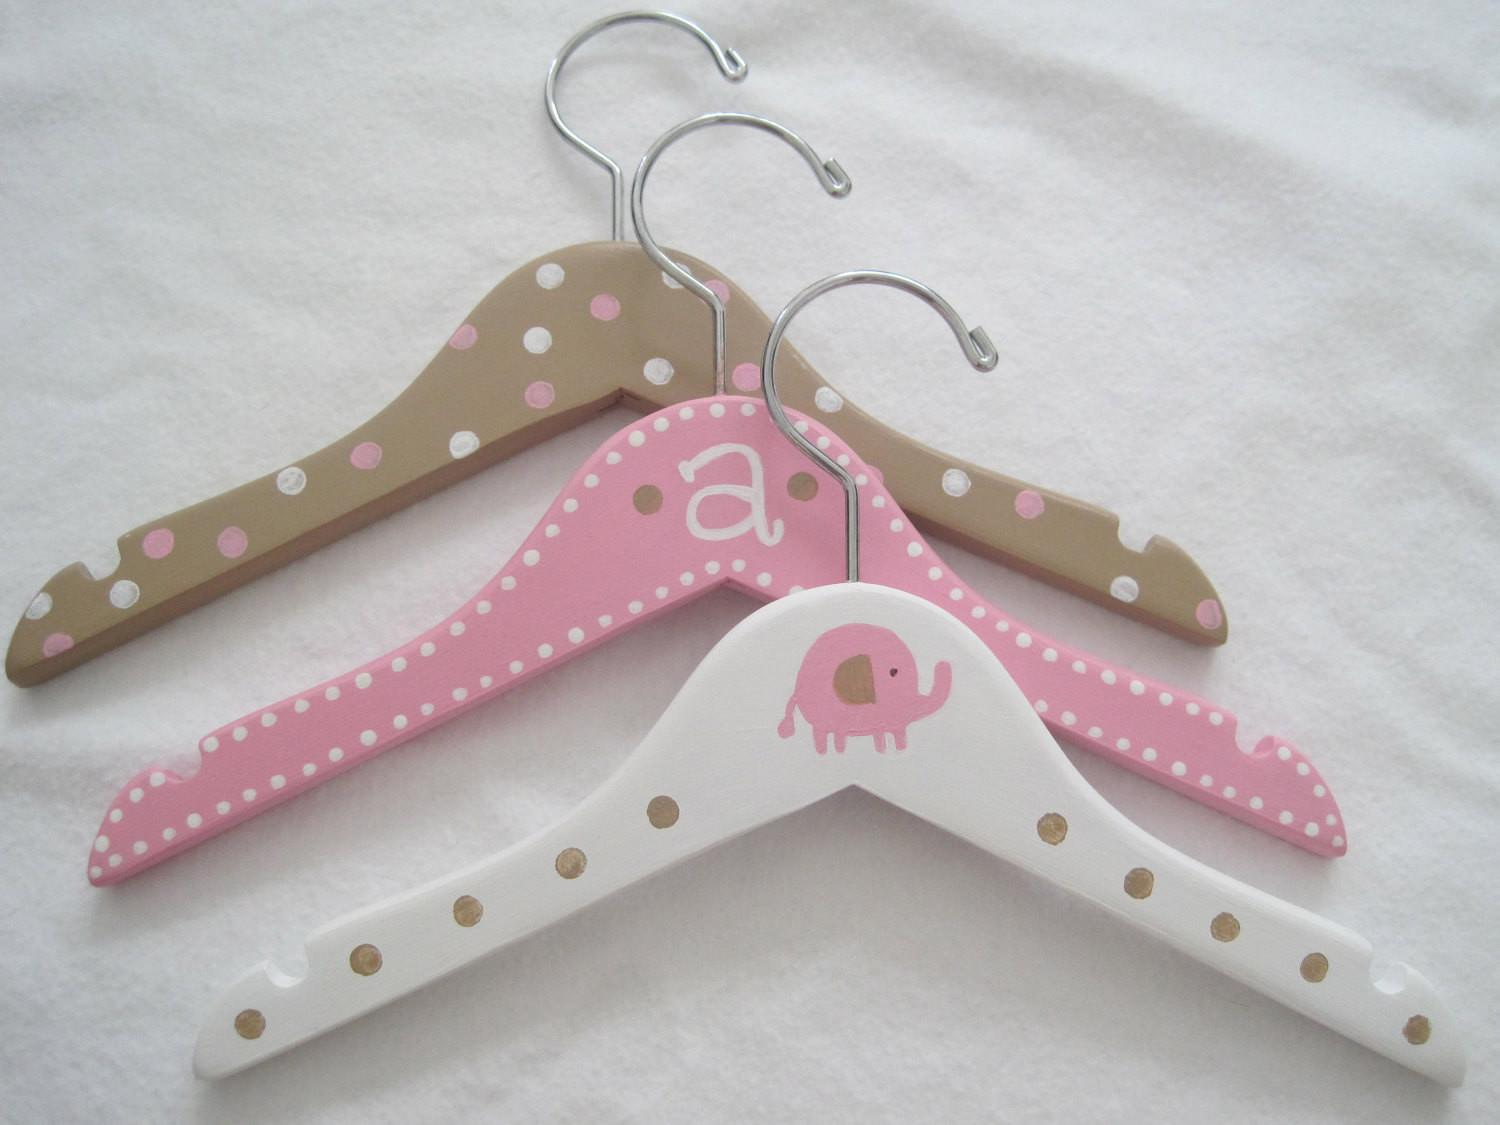 Personalized Wooden Painted Baby Hangers